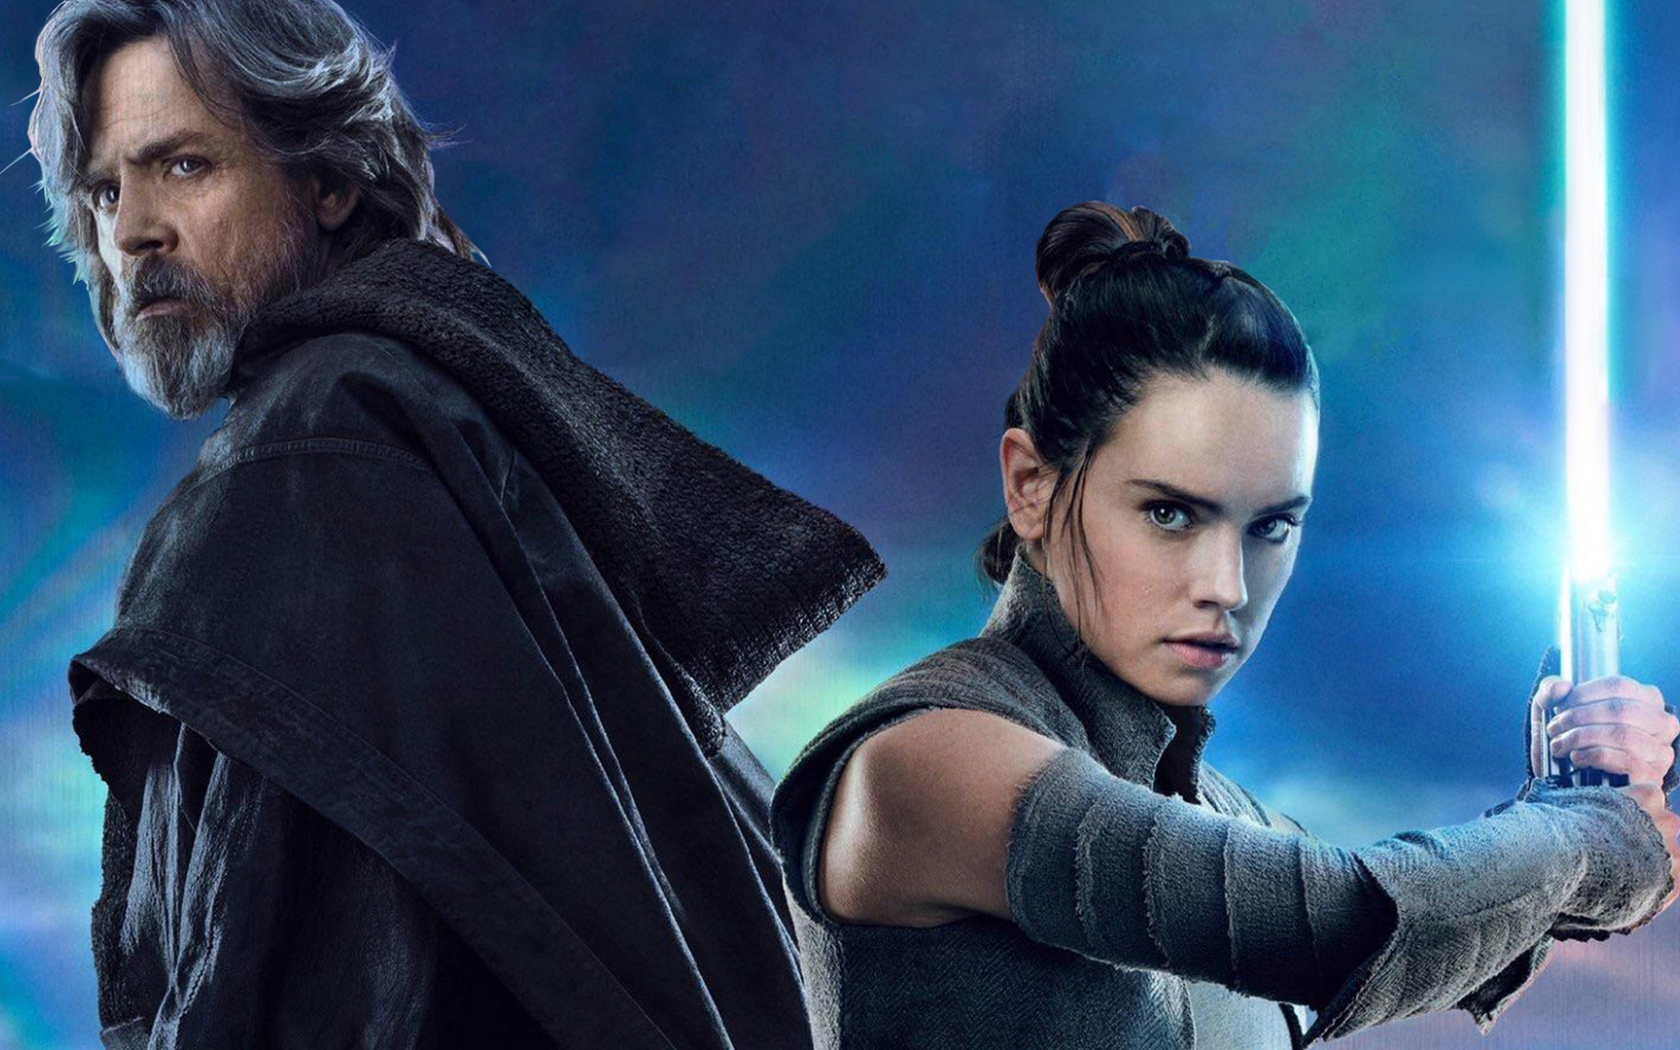 Free Download Hd Luke Skywalker And Rey Star Wars The Last Jedi